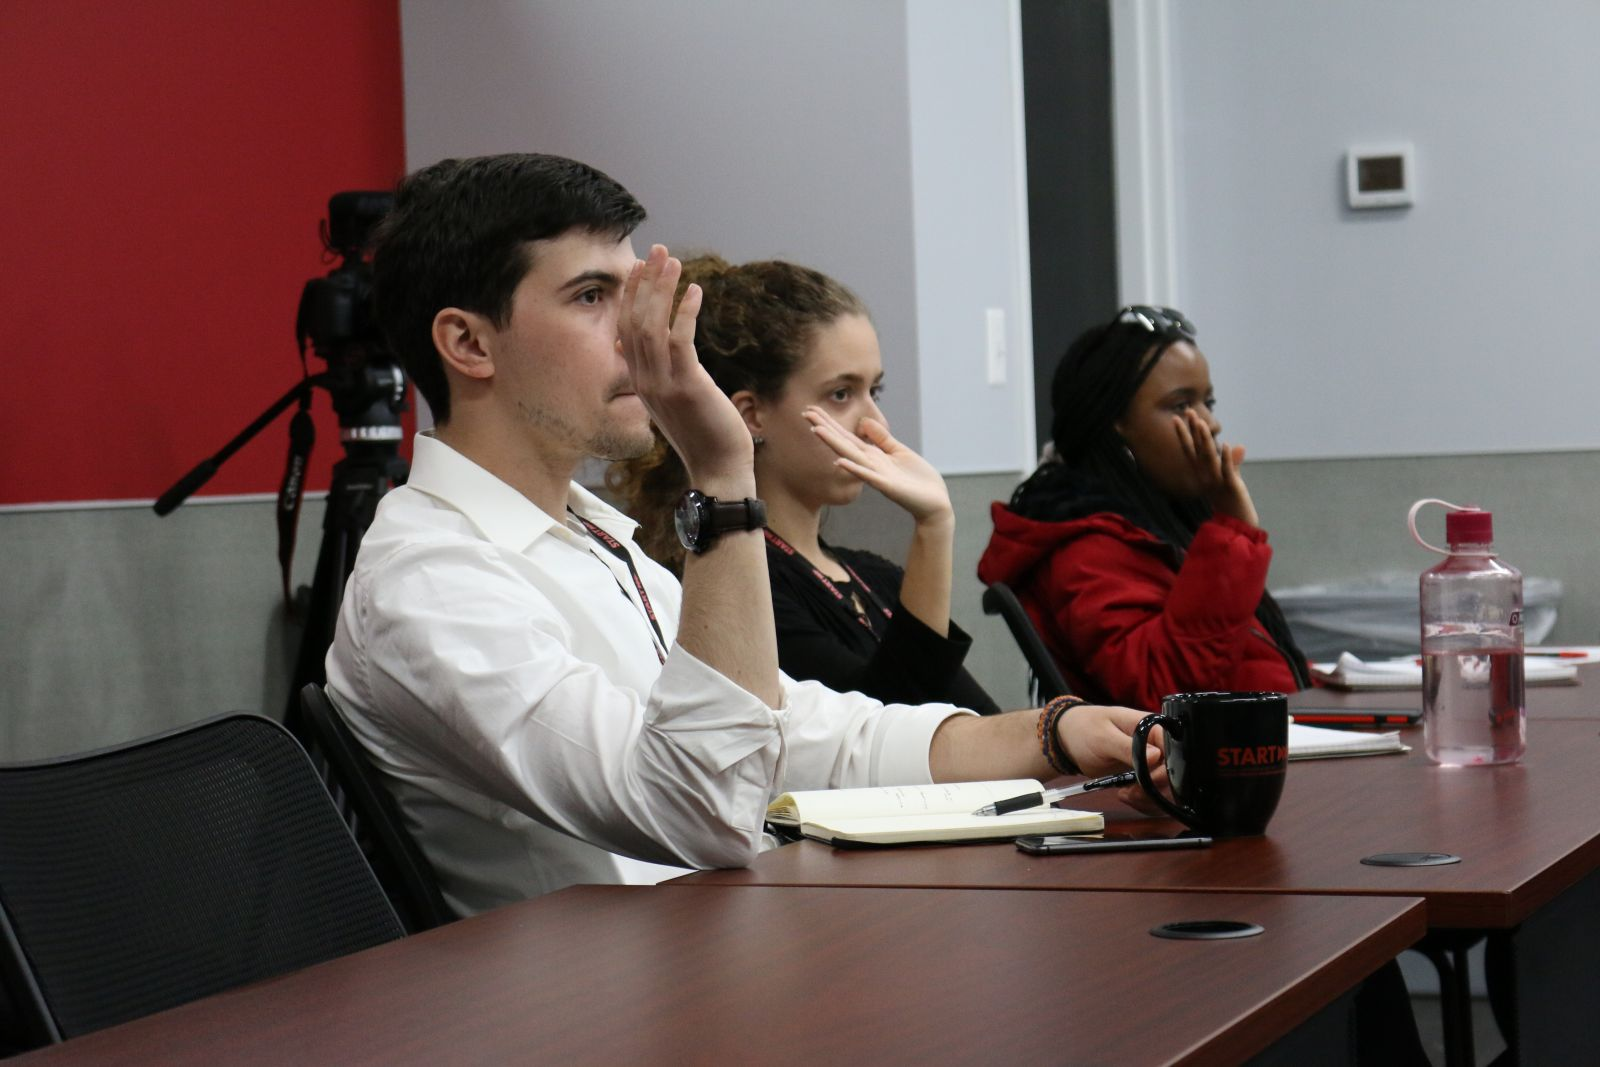 Students participate in a discussion at START